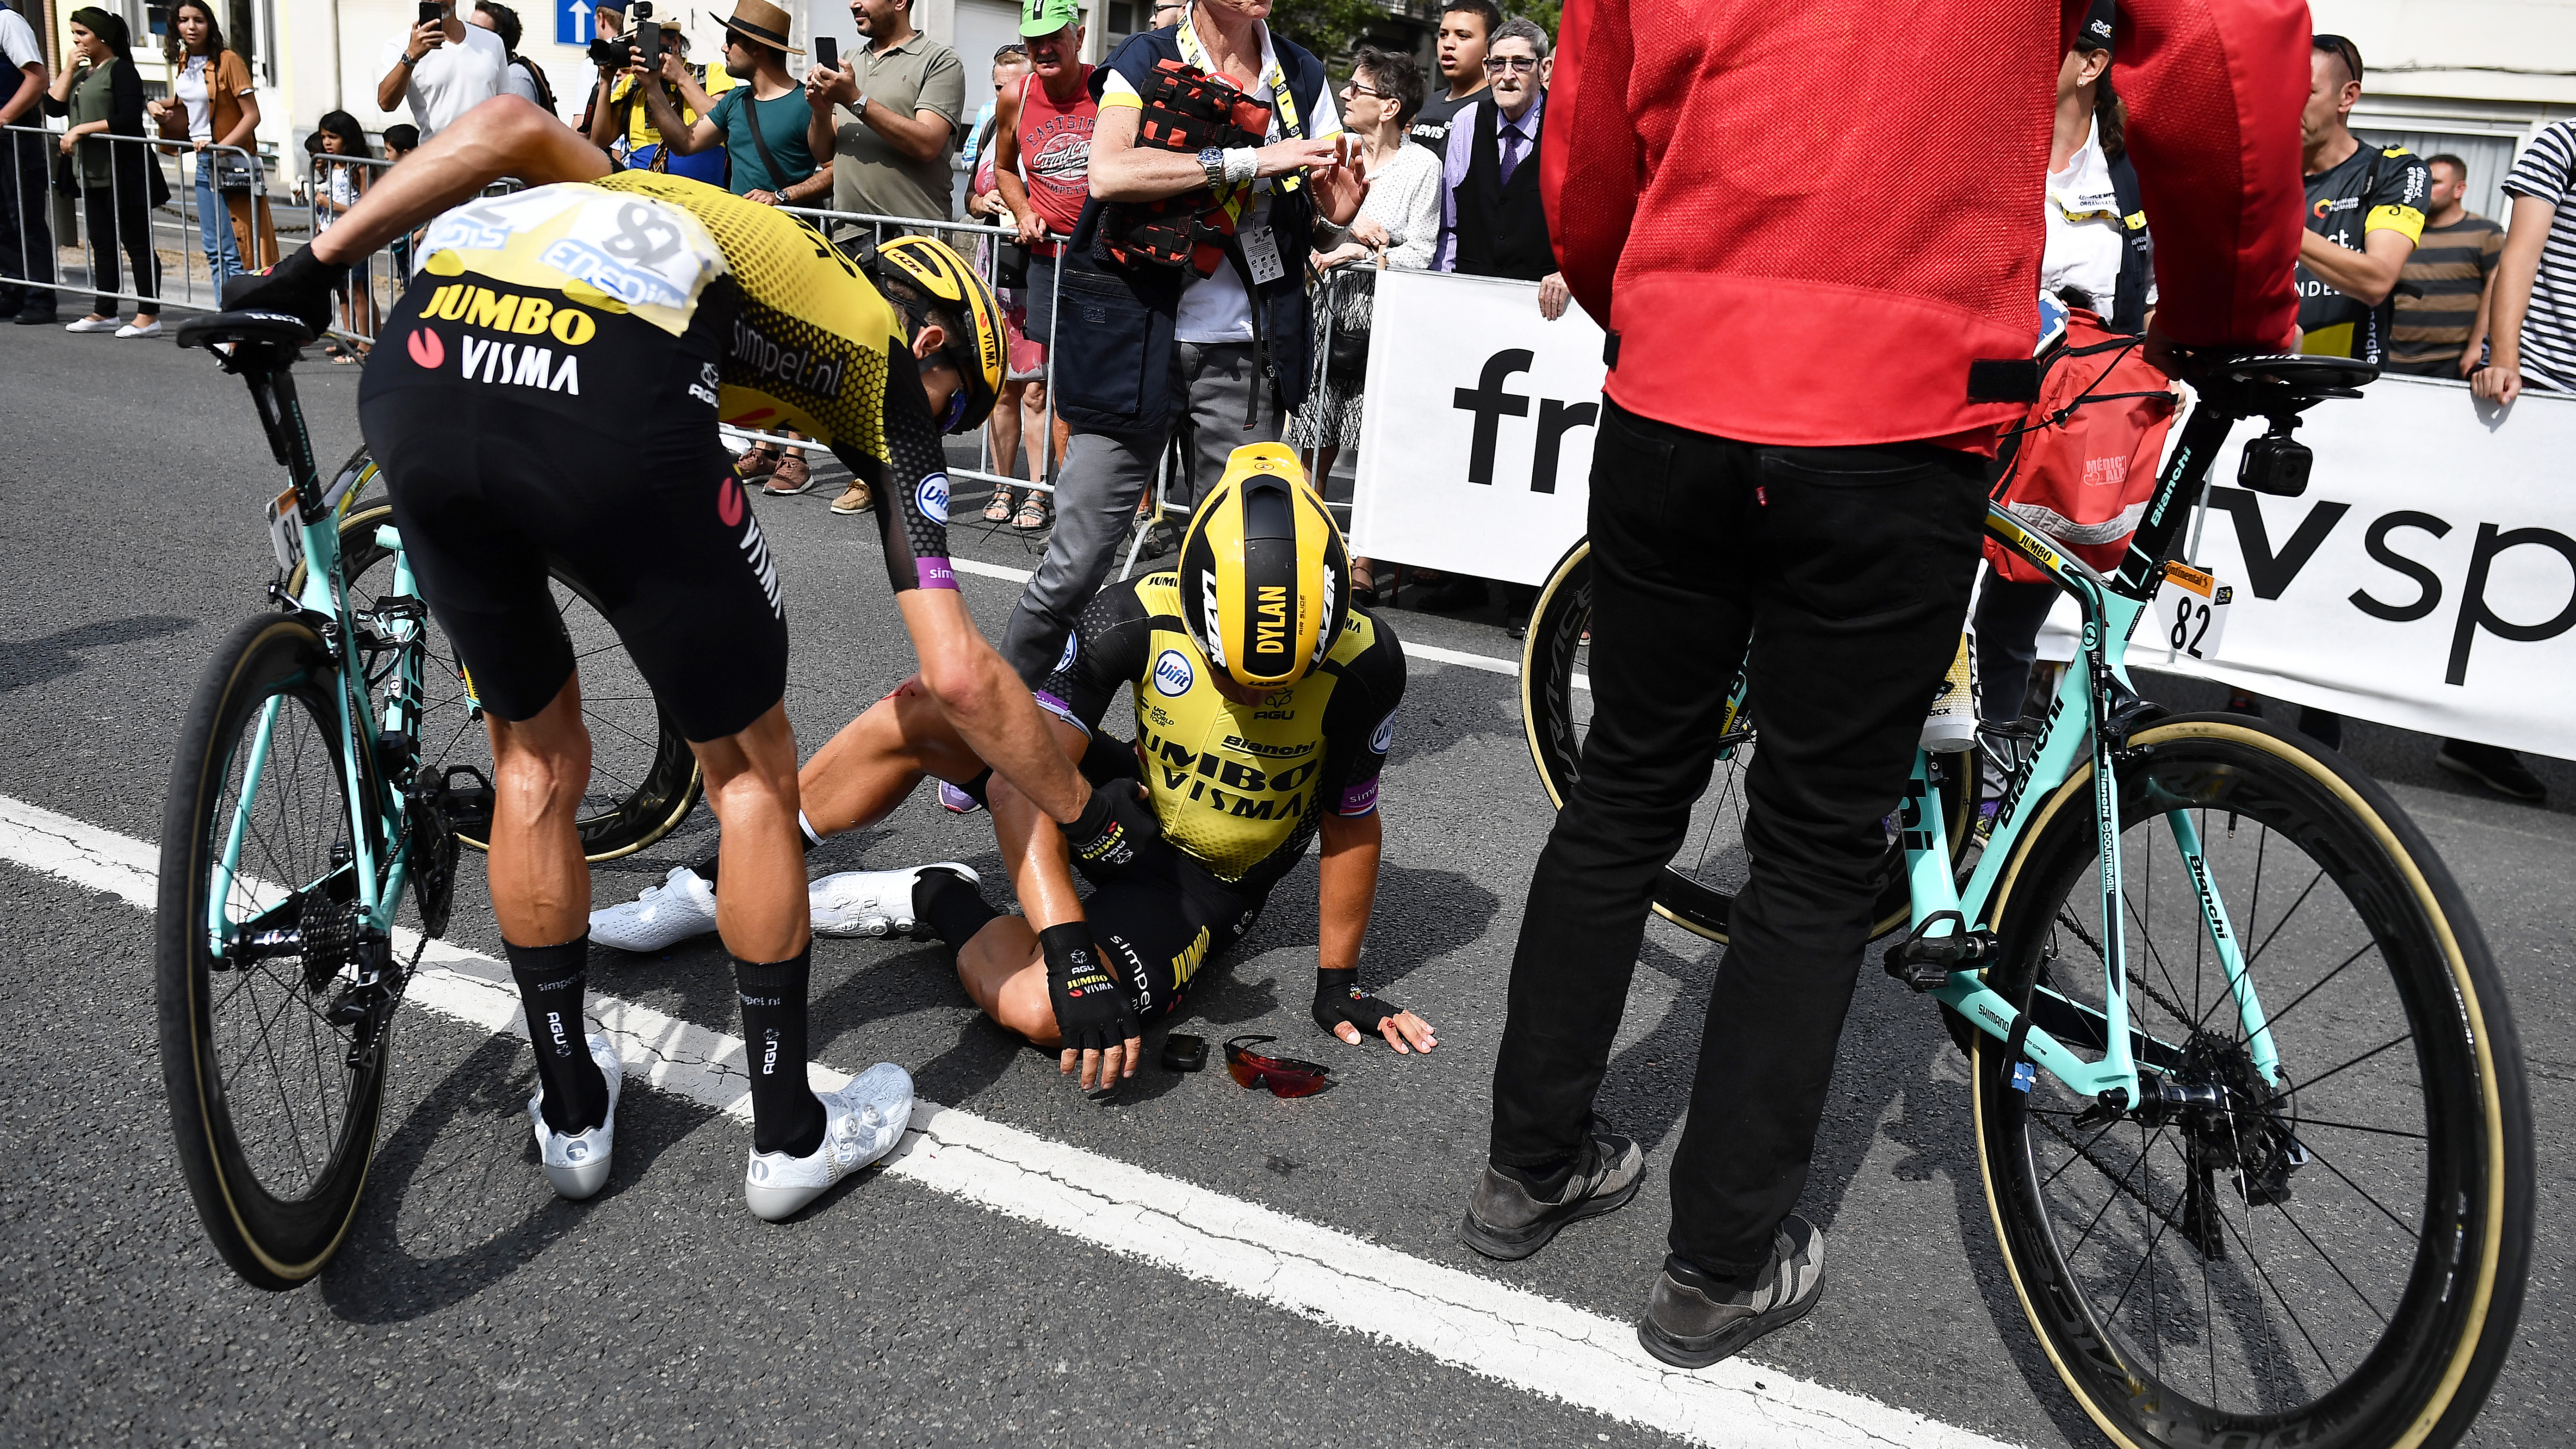 2019 Tour de France: Scariest crashes from first 10 stages | NBC Sports